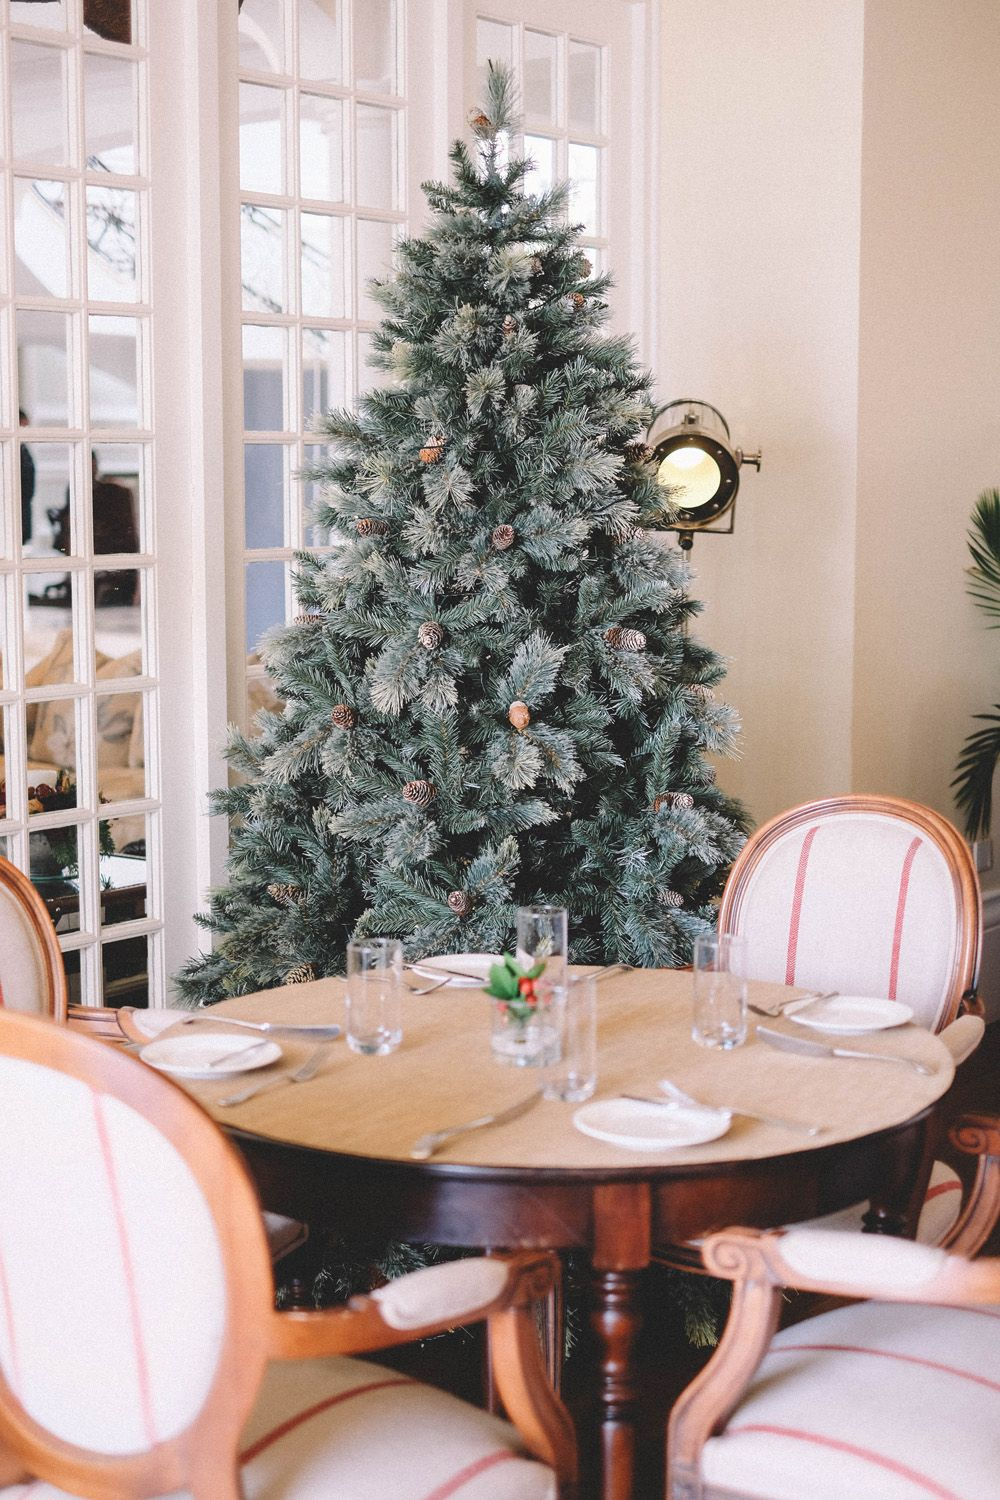 Stunning Merry Christmas Images Decor, Decorating your